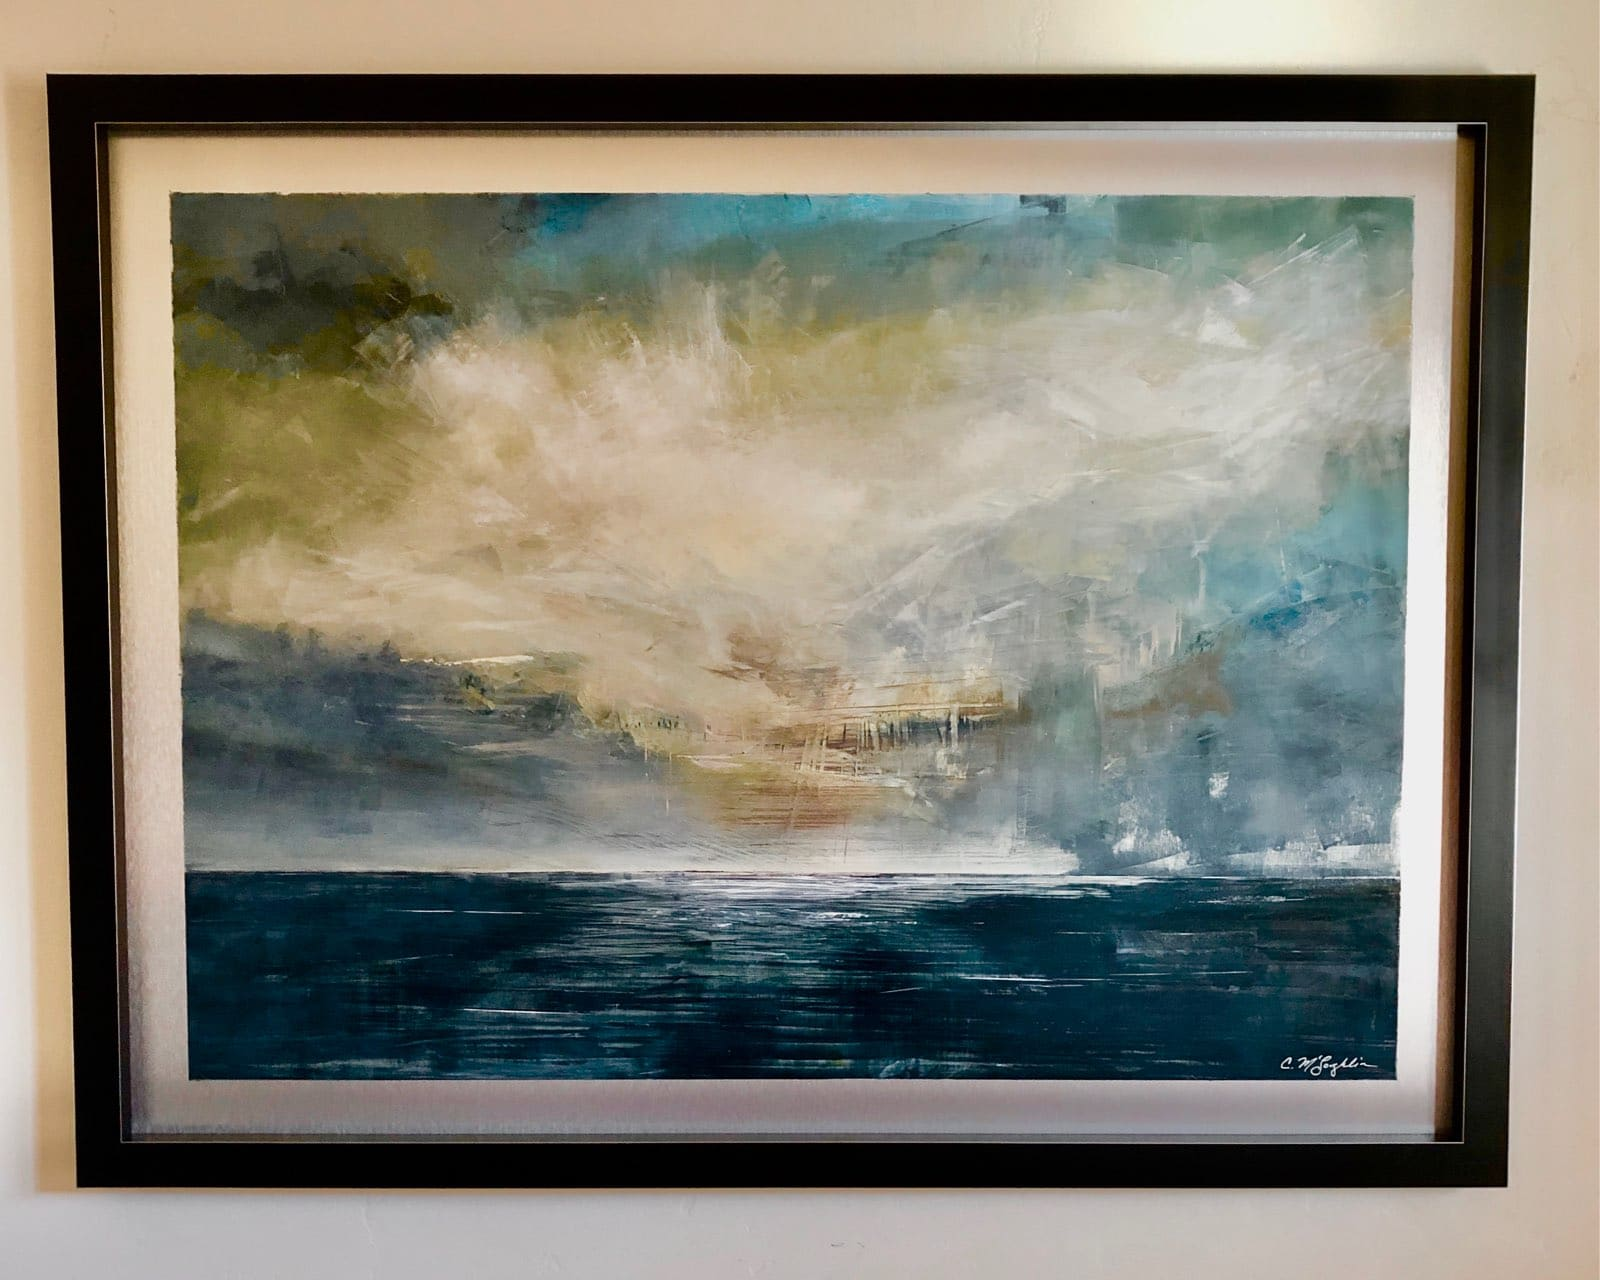 September, Contemporary oil painting on metal of white clouds among dark stormy clouds over lake, Fine Art by Cynthia McLoughlin